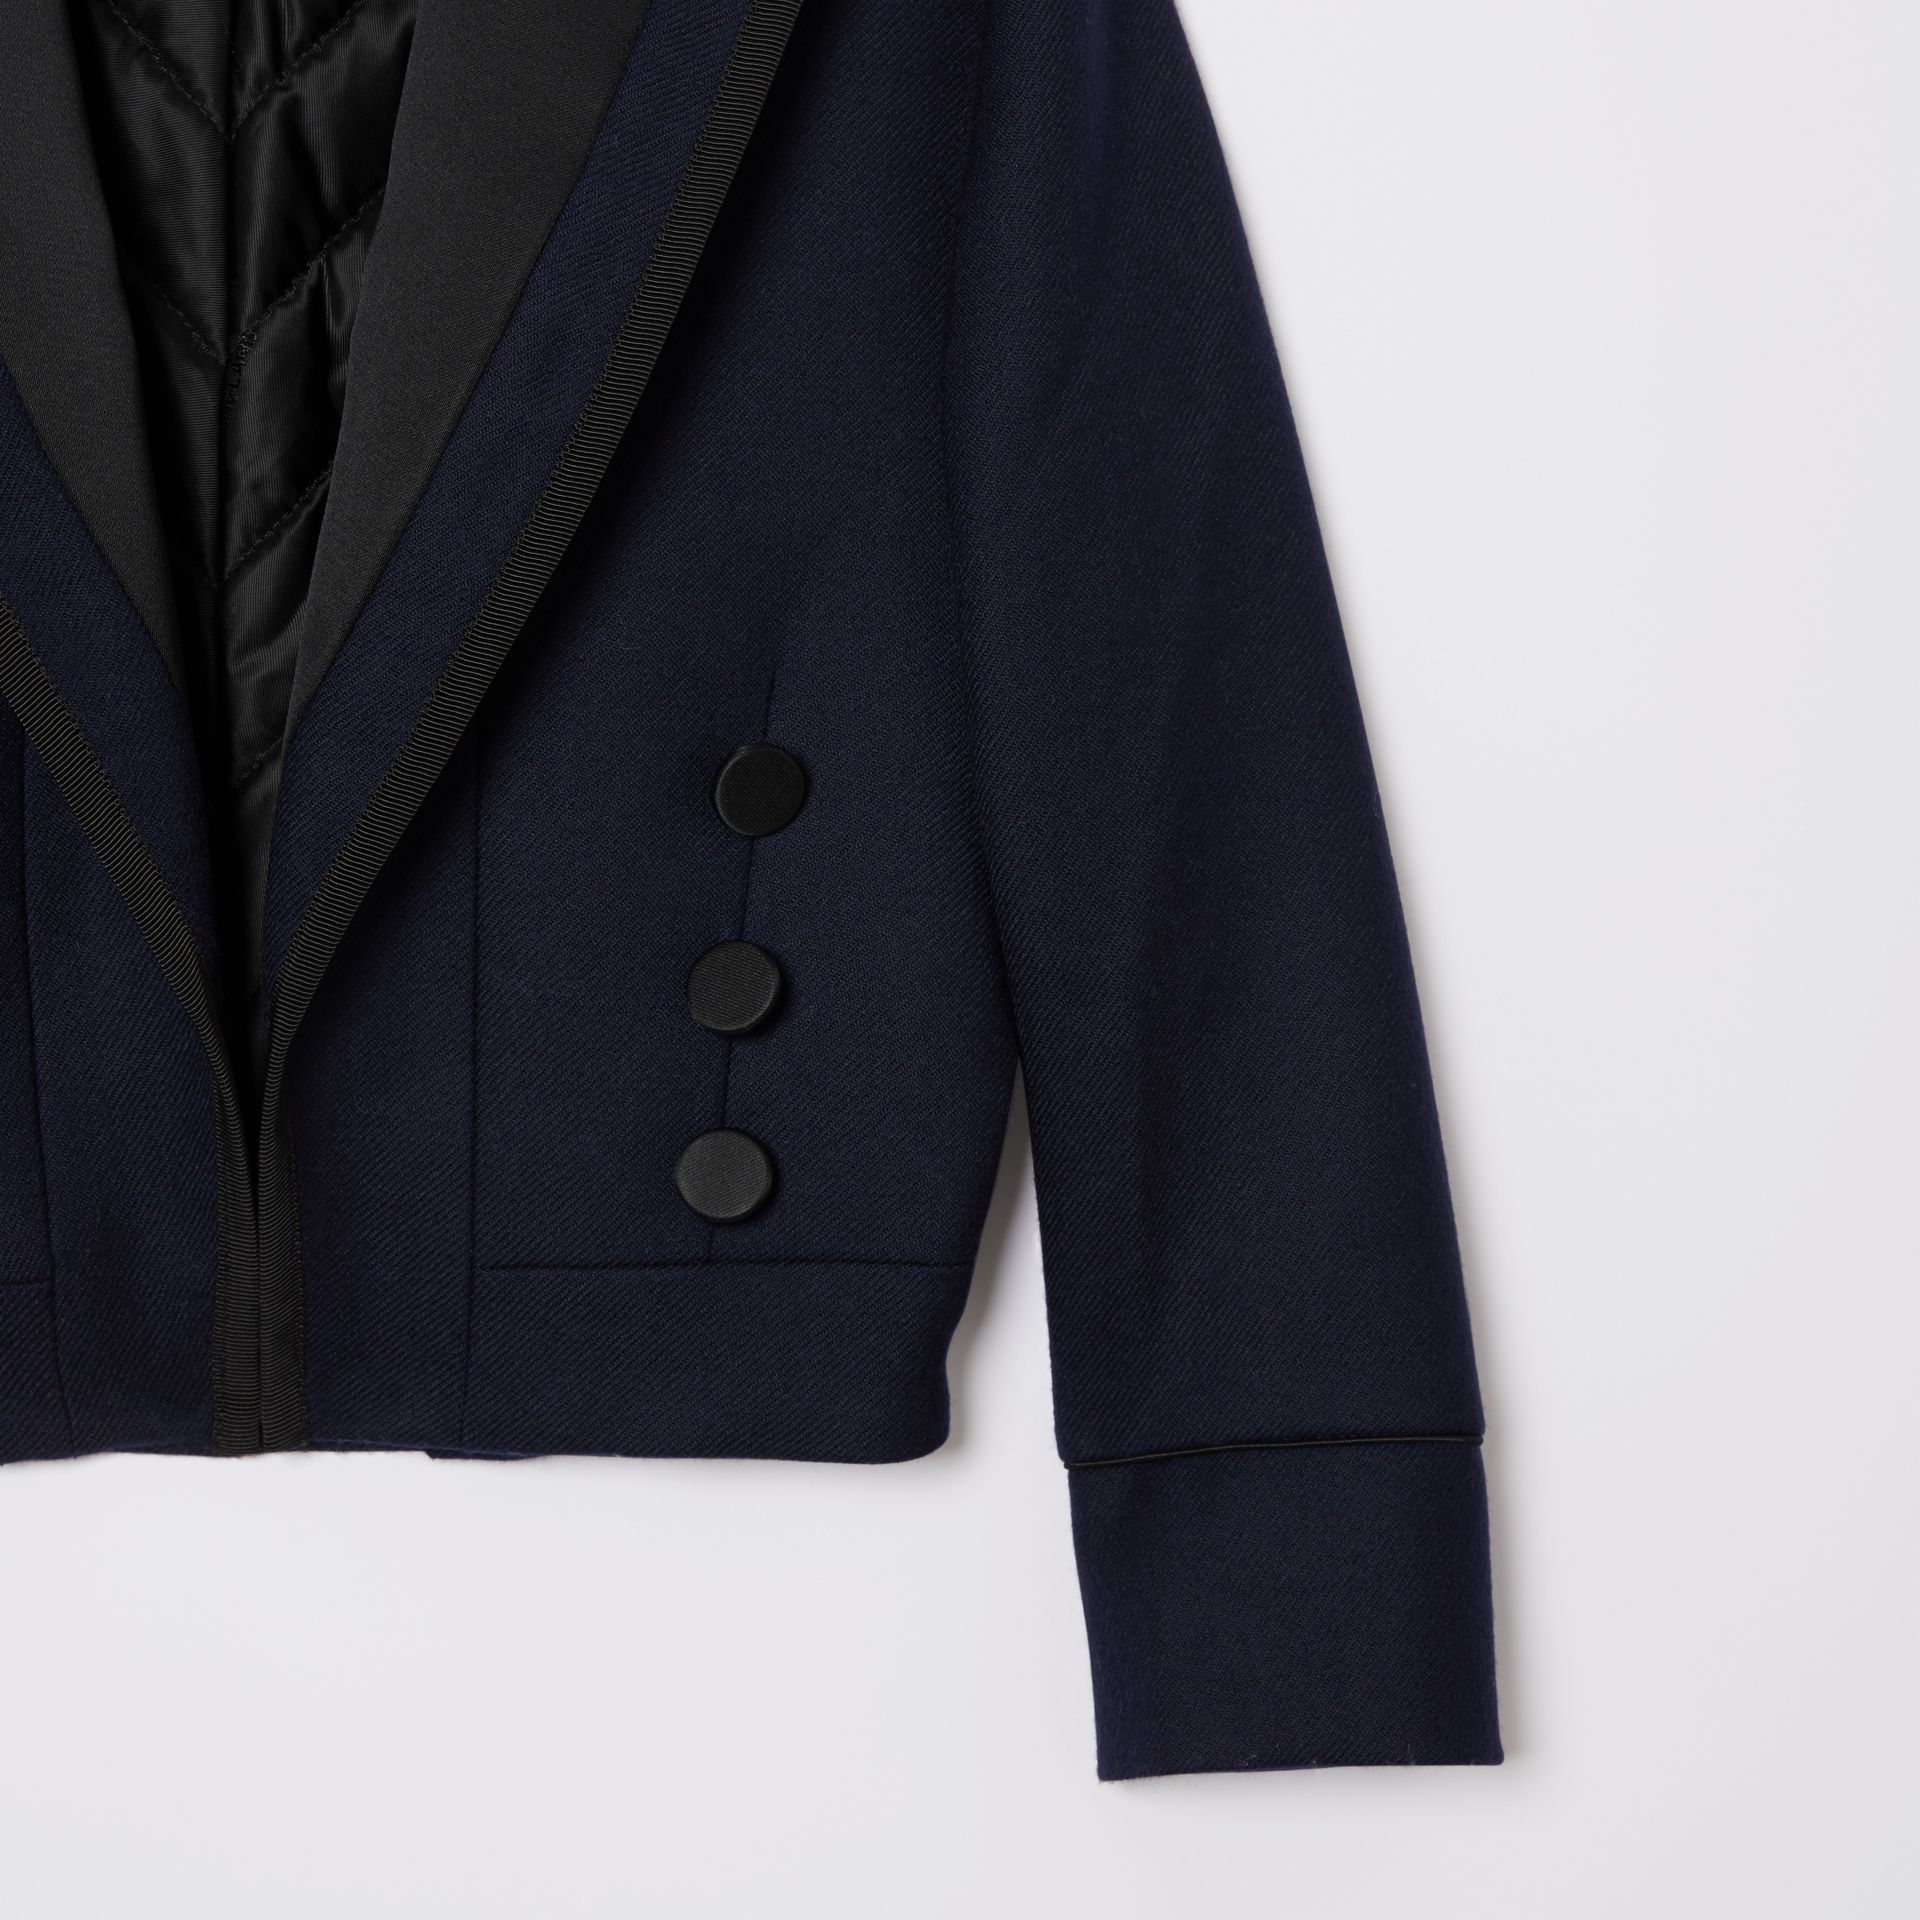 Satin Trim Wool Twill Tailored Jacket in Navy | Burberry - gallery image 4